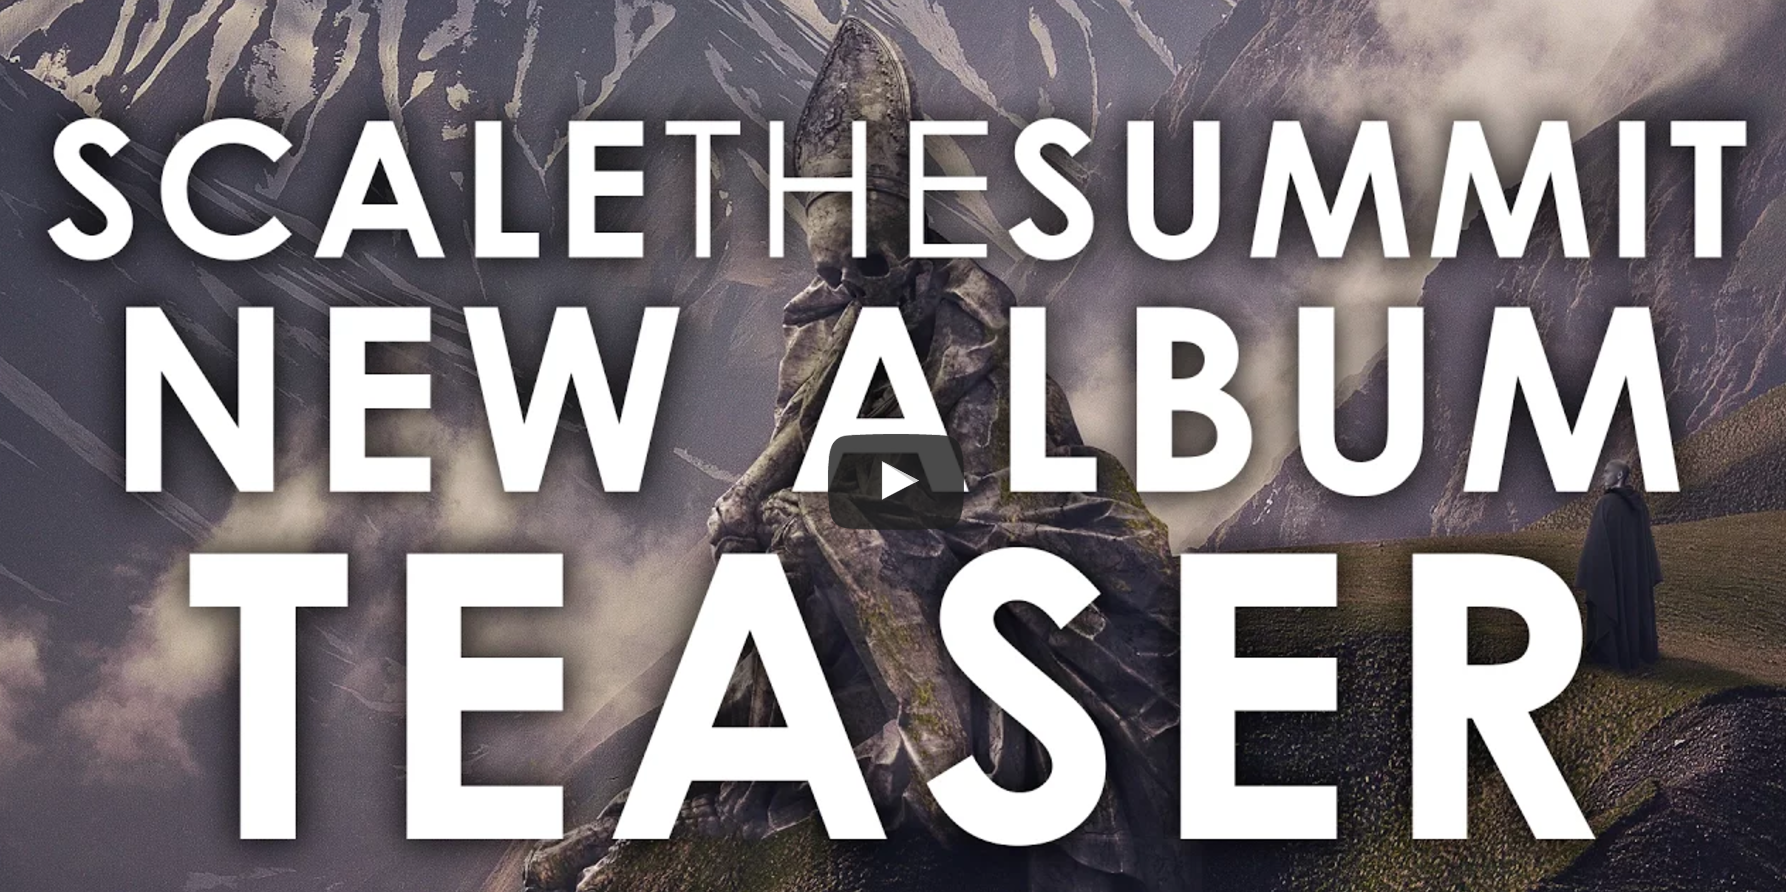 Scale the Summit reveal new album trailer